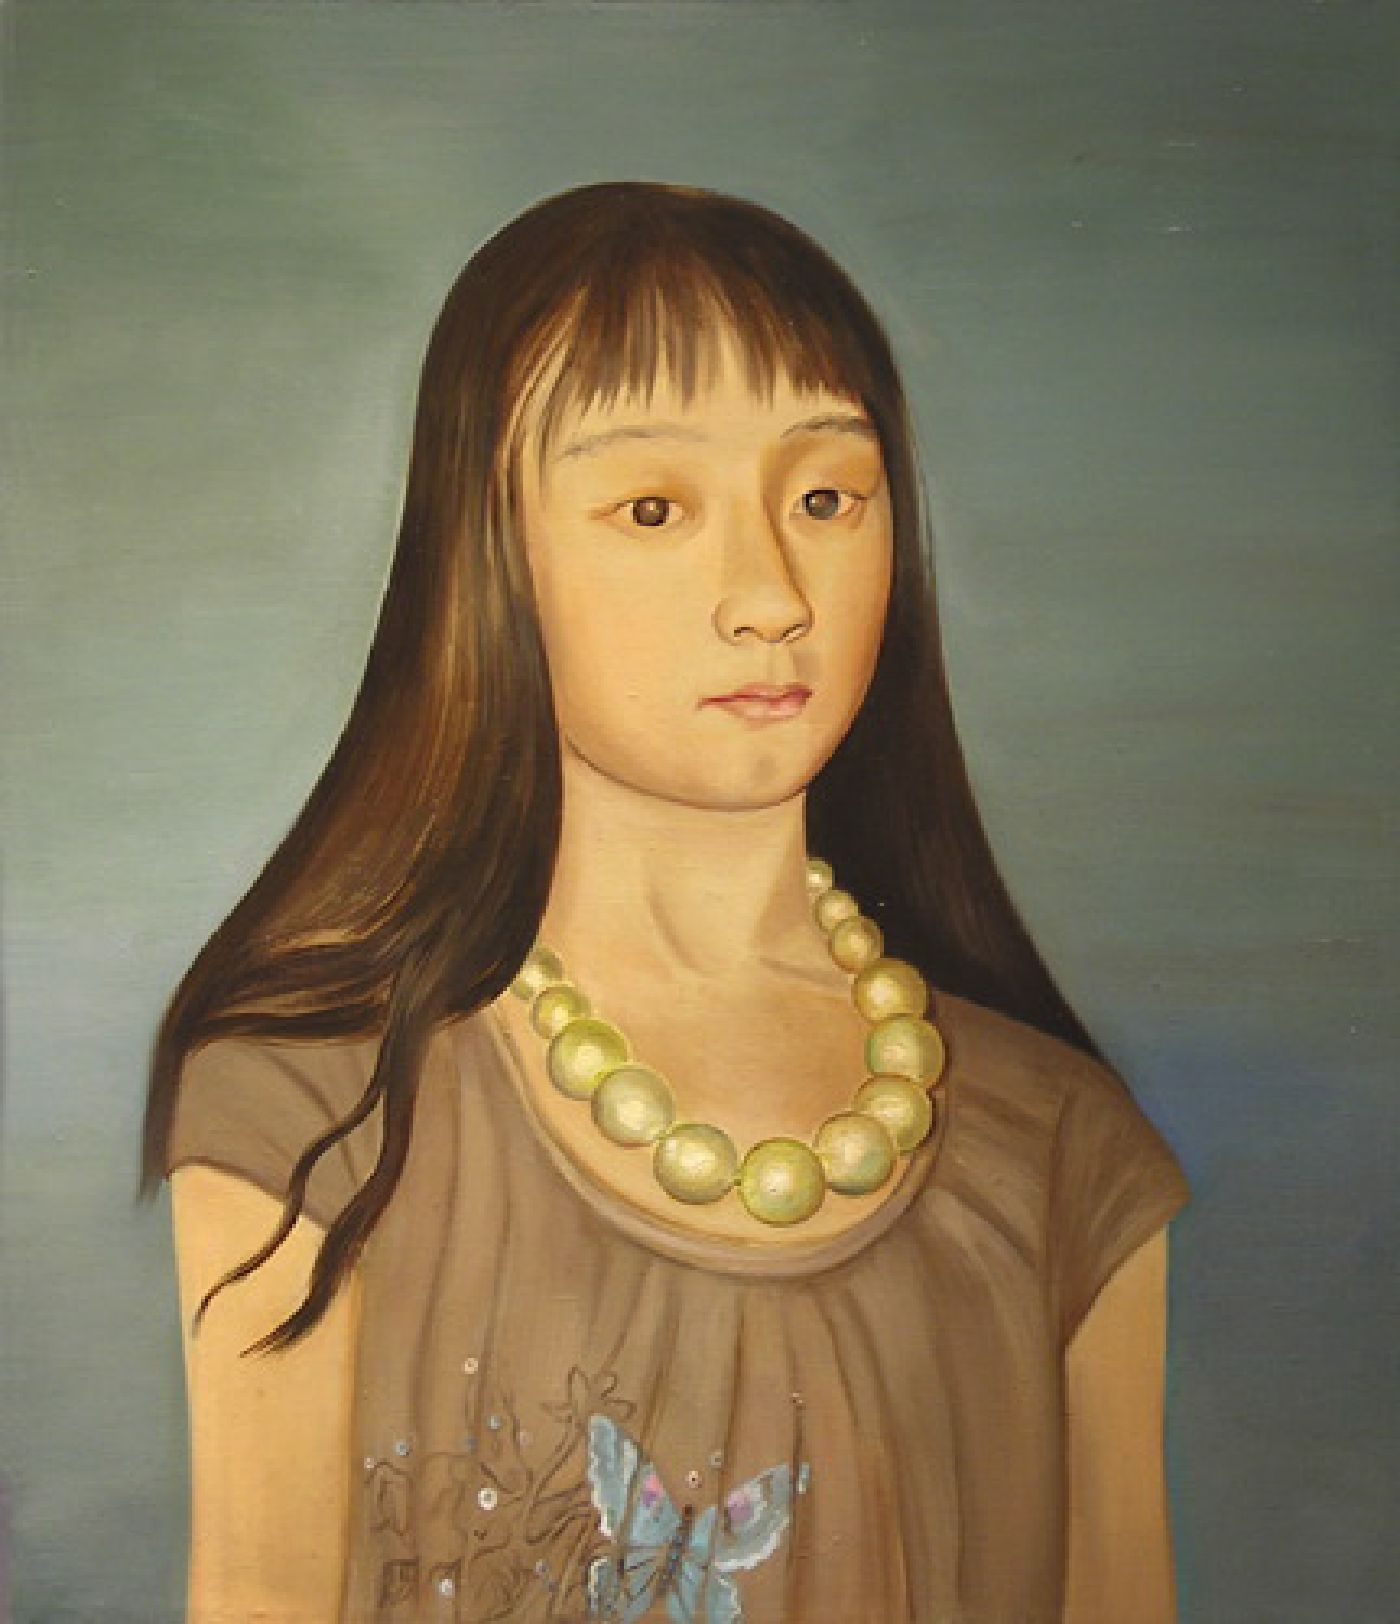 So Much Younger Then (Isabel with Big Beads)- oil on linen, 26 x 22 inches, 2009